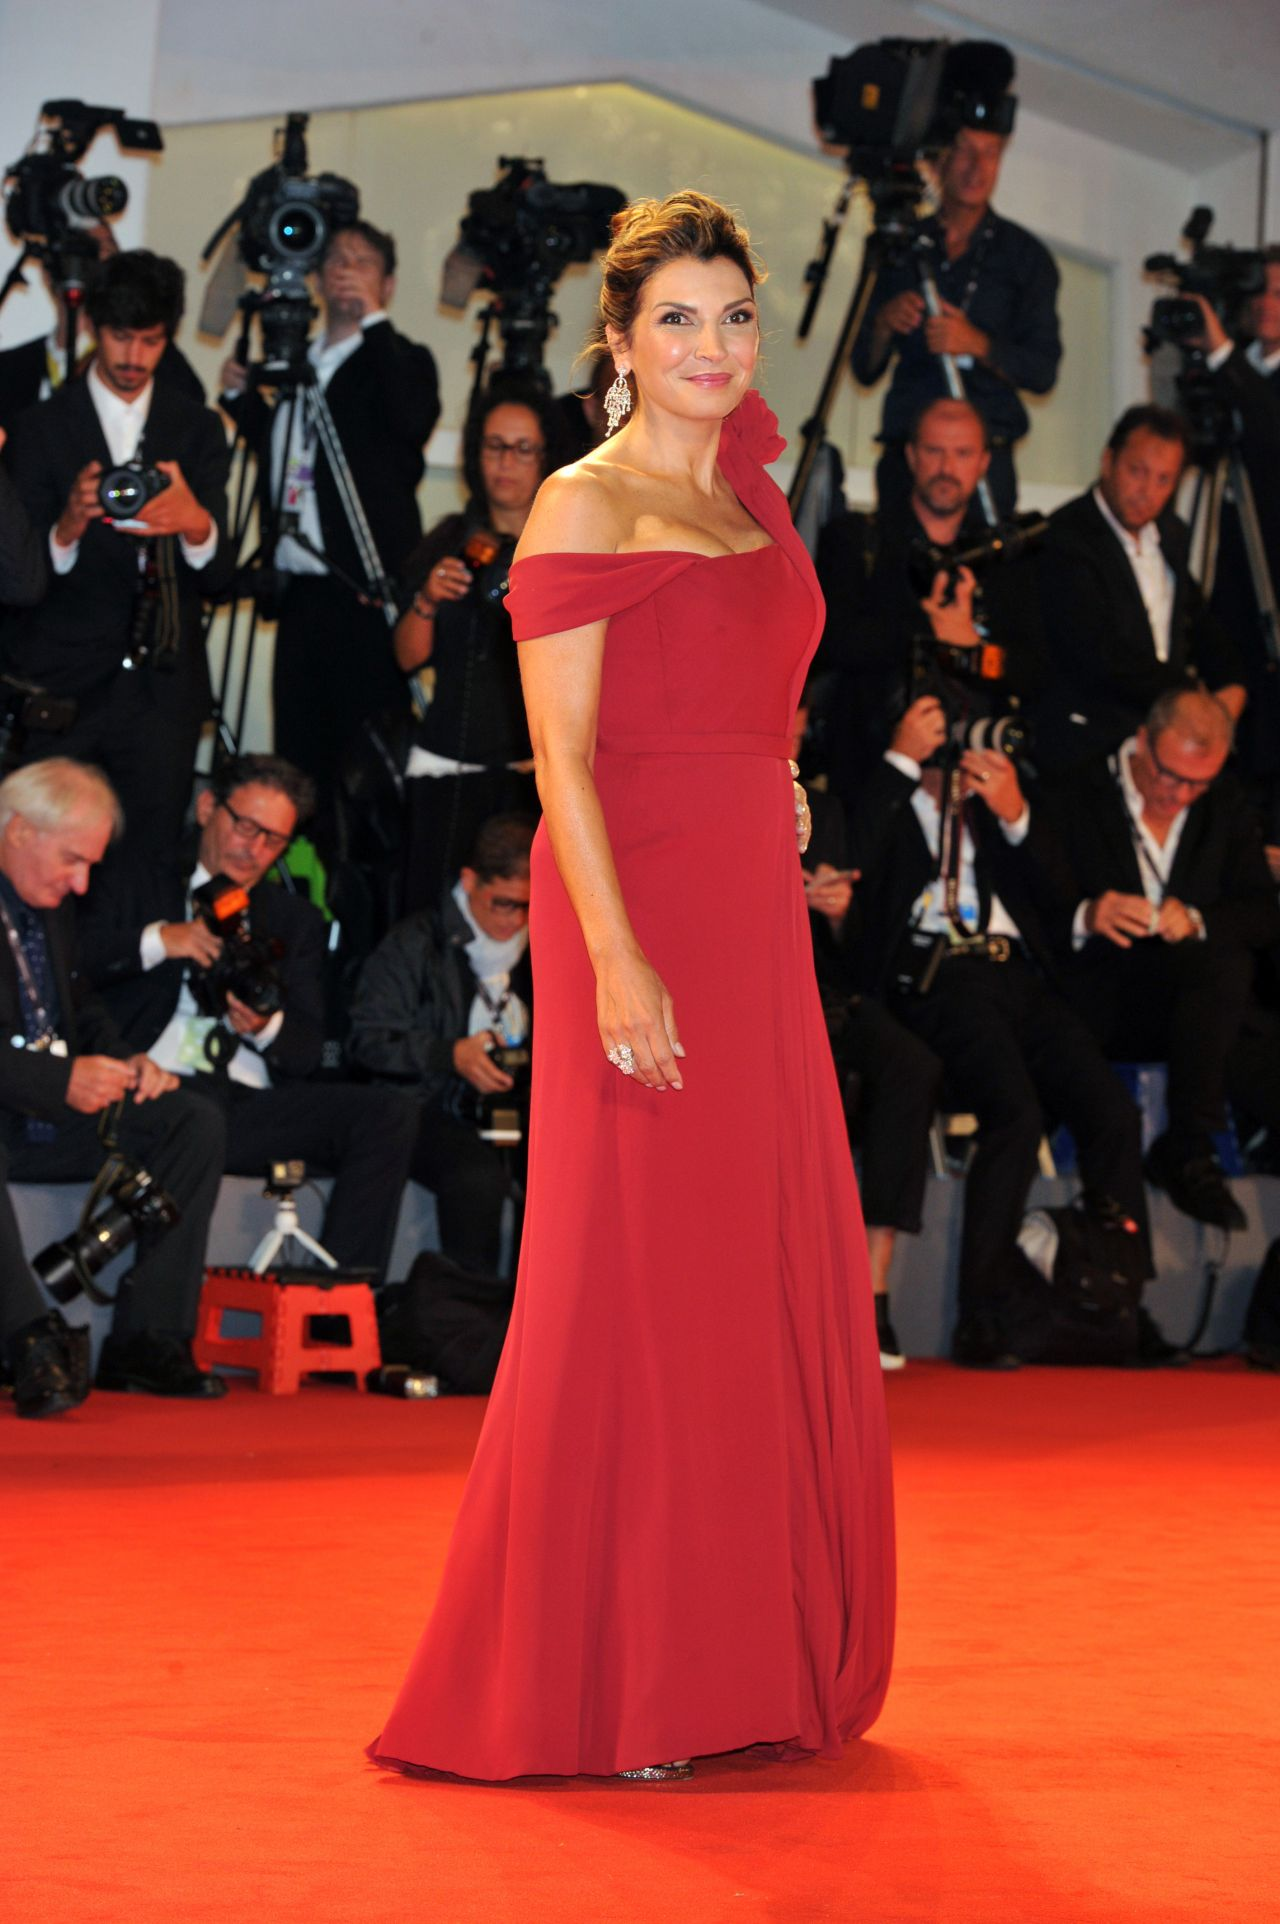 pictures Alexandra dinu loving pablo premiere at the venice film festival